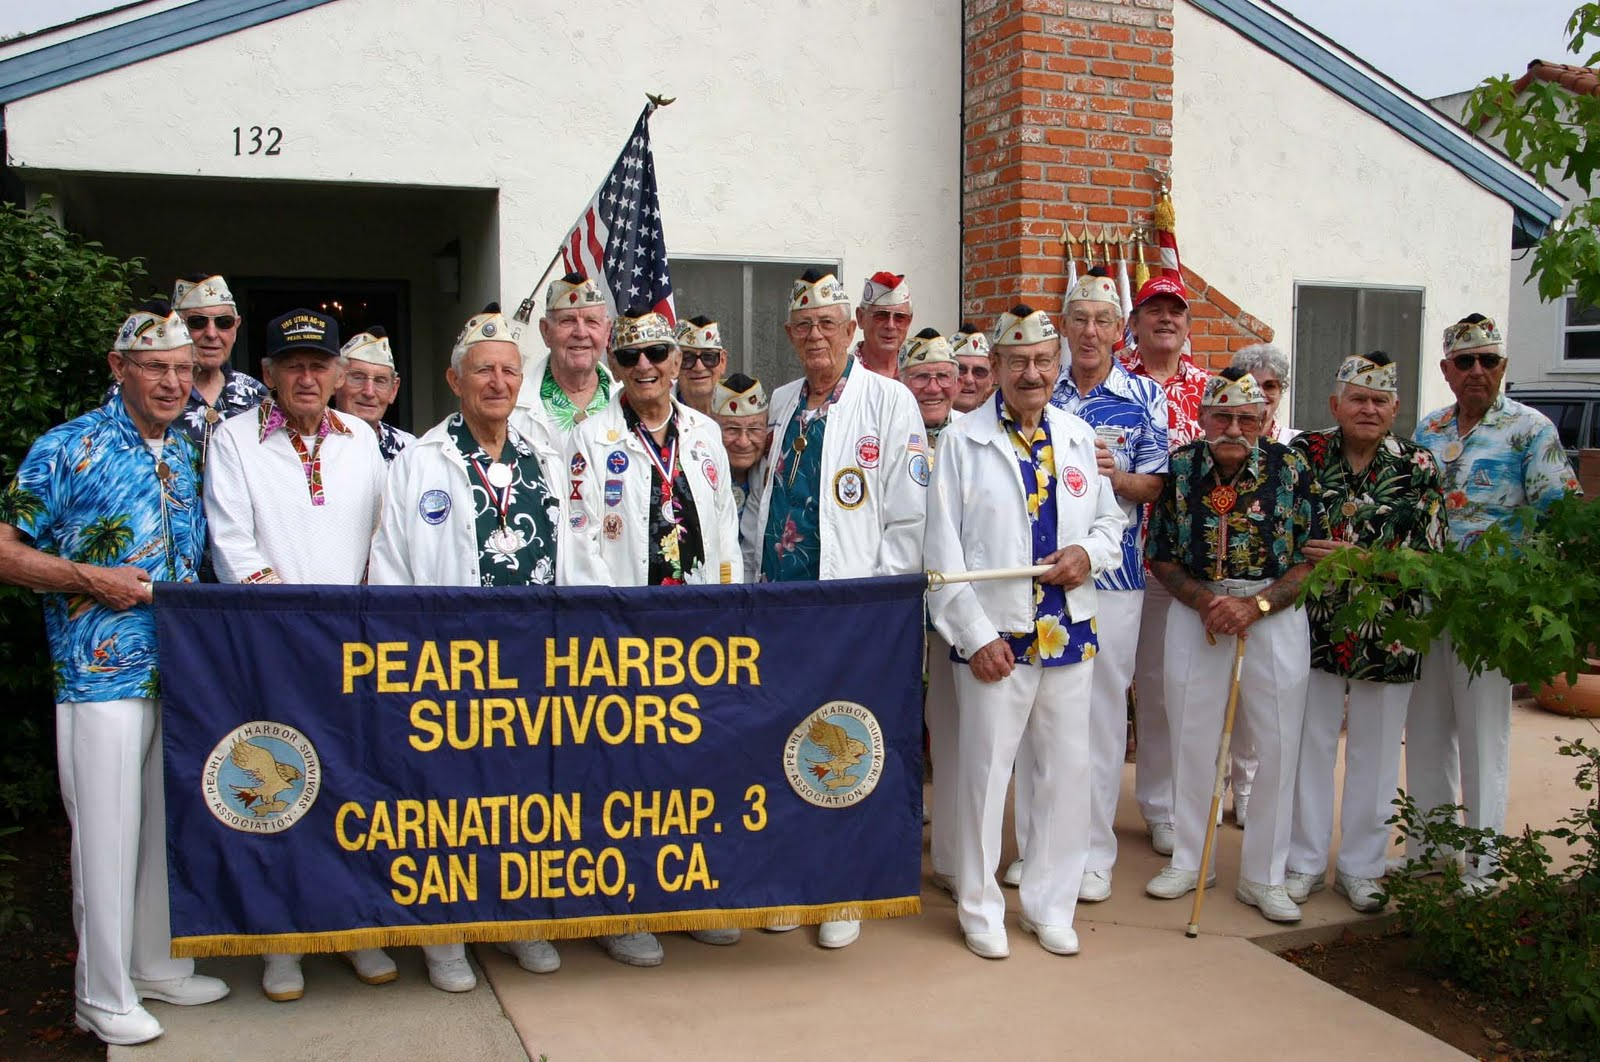 We love you survivors of pearl harbor